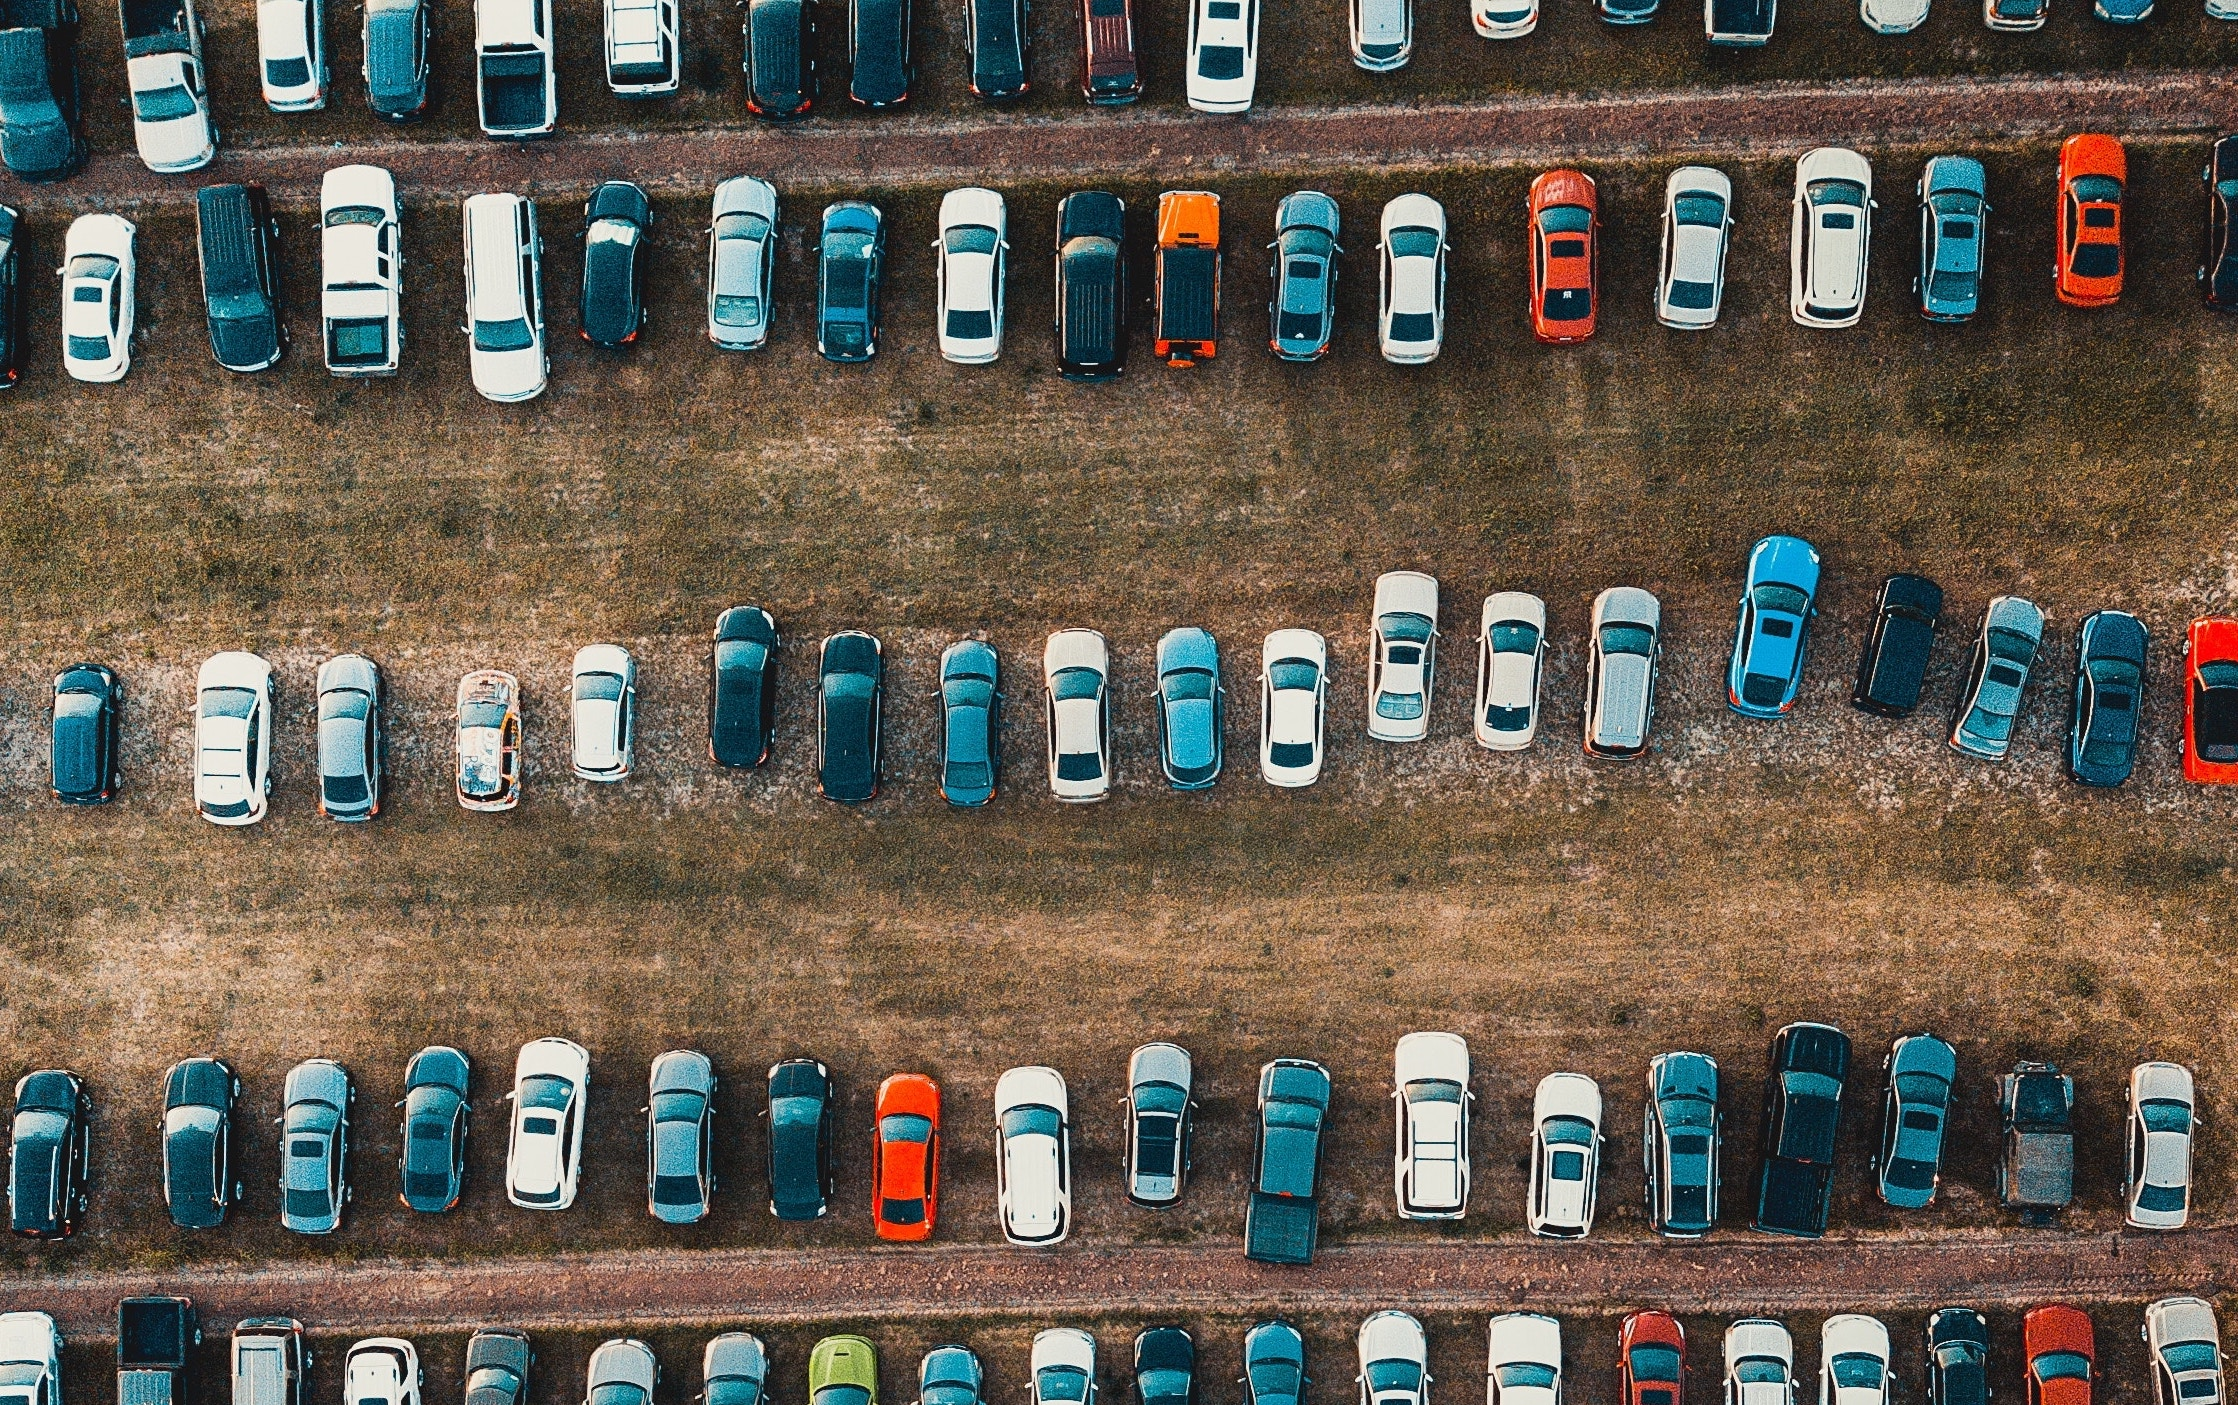 Overhead view of multicolored cars parked in field